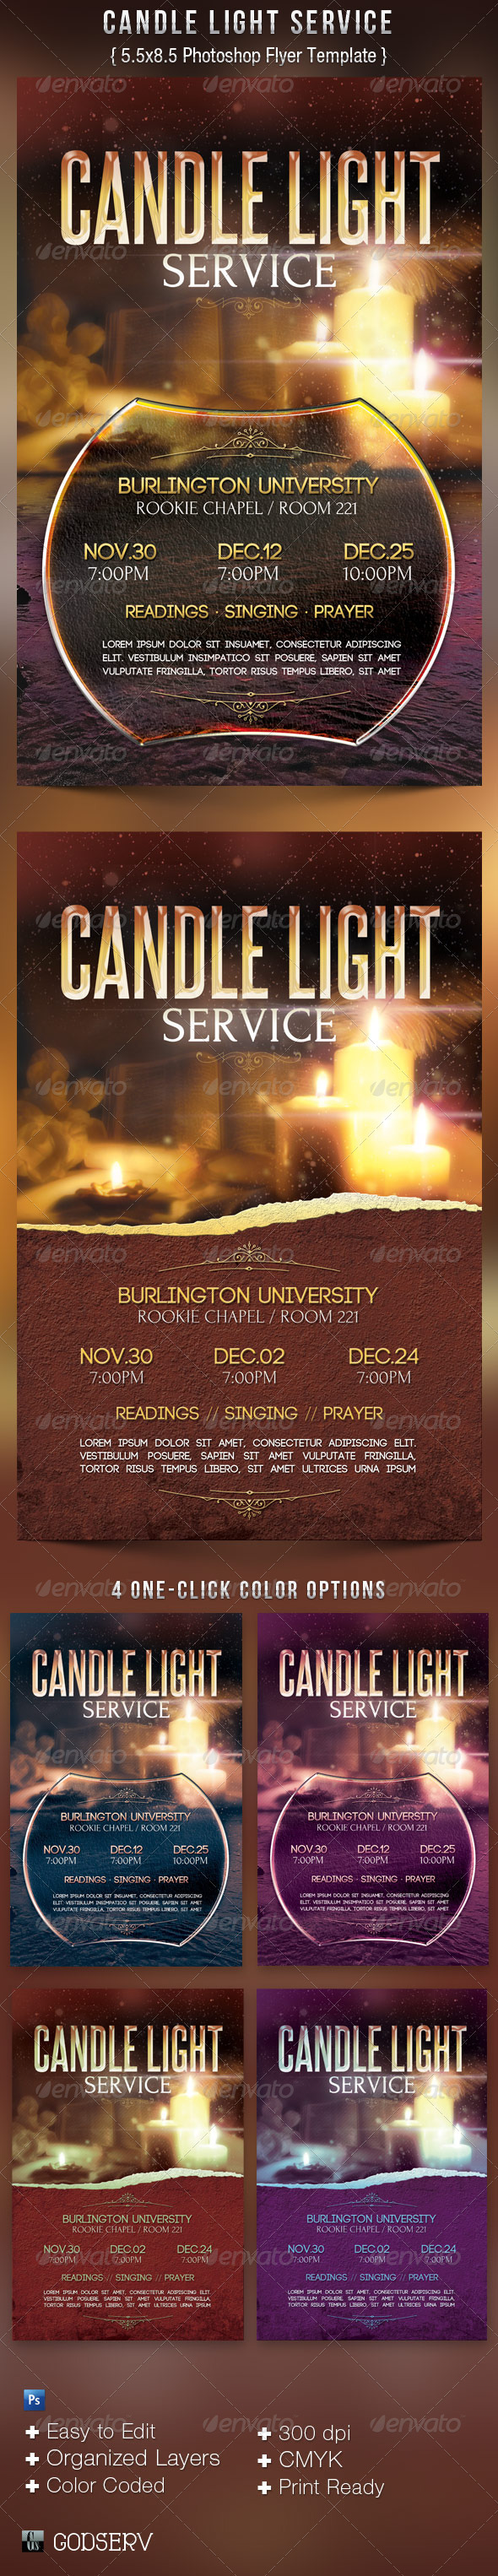 Candle Light Service  Flyer Templates - Church Flyers